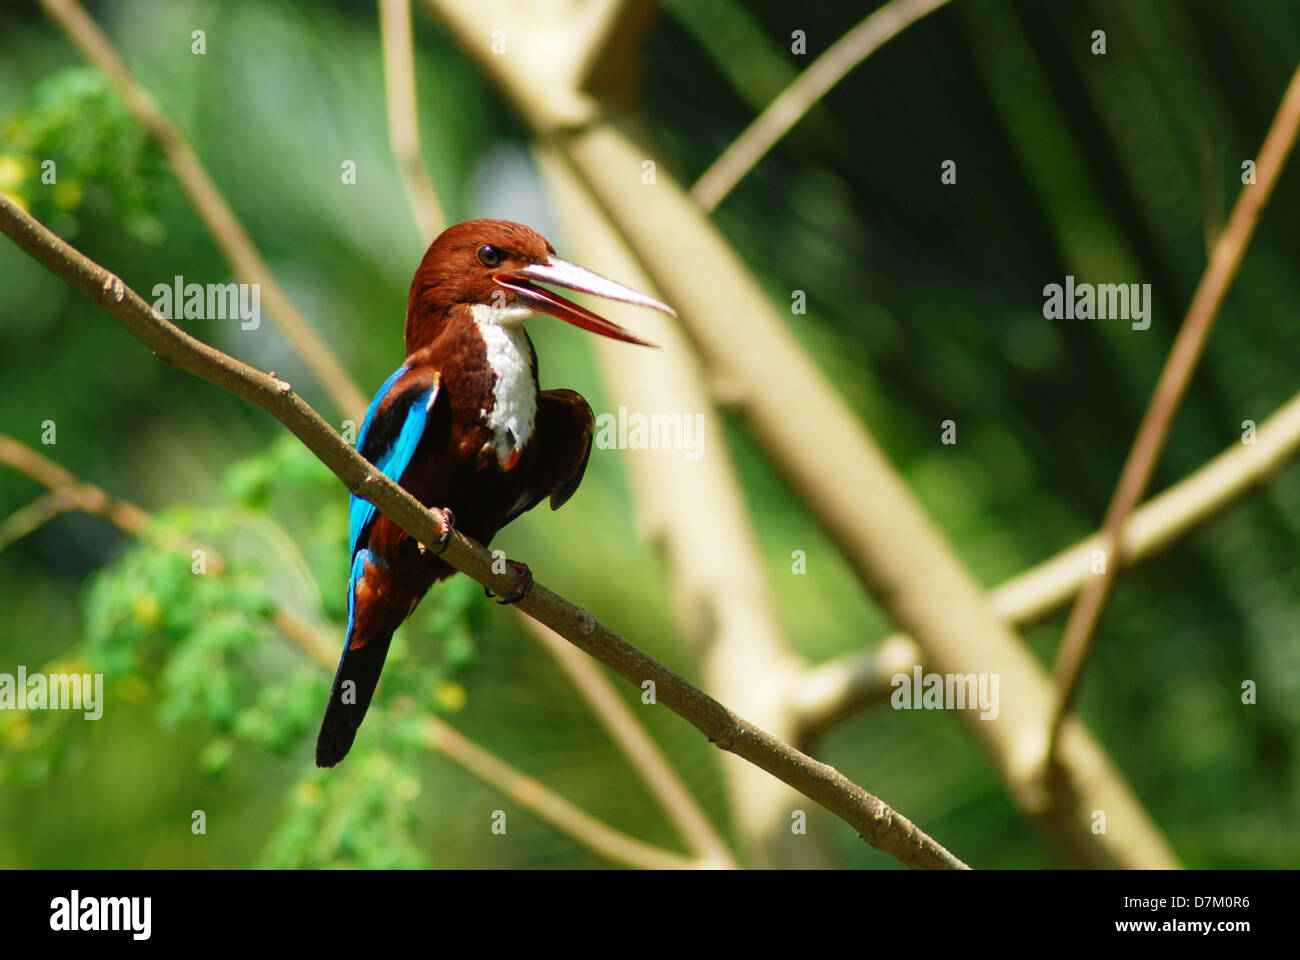 The White-throated Kingfisher - Stock Image